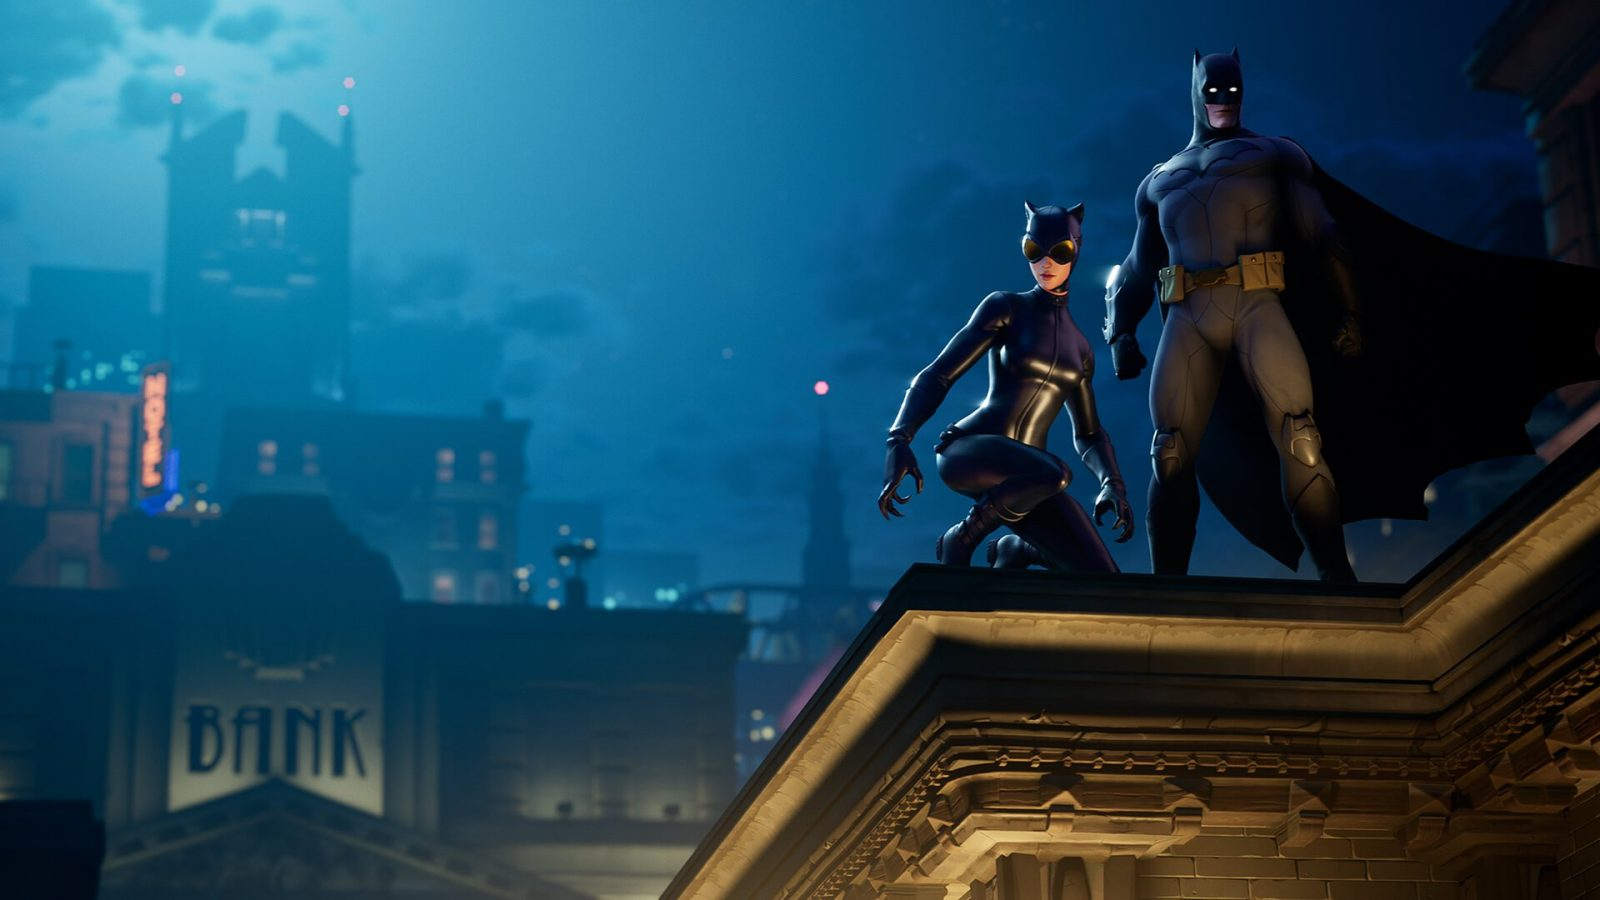 Become The Night In The New Fortnite x Batman Crossover, Live Right Now